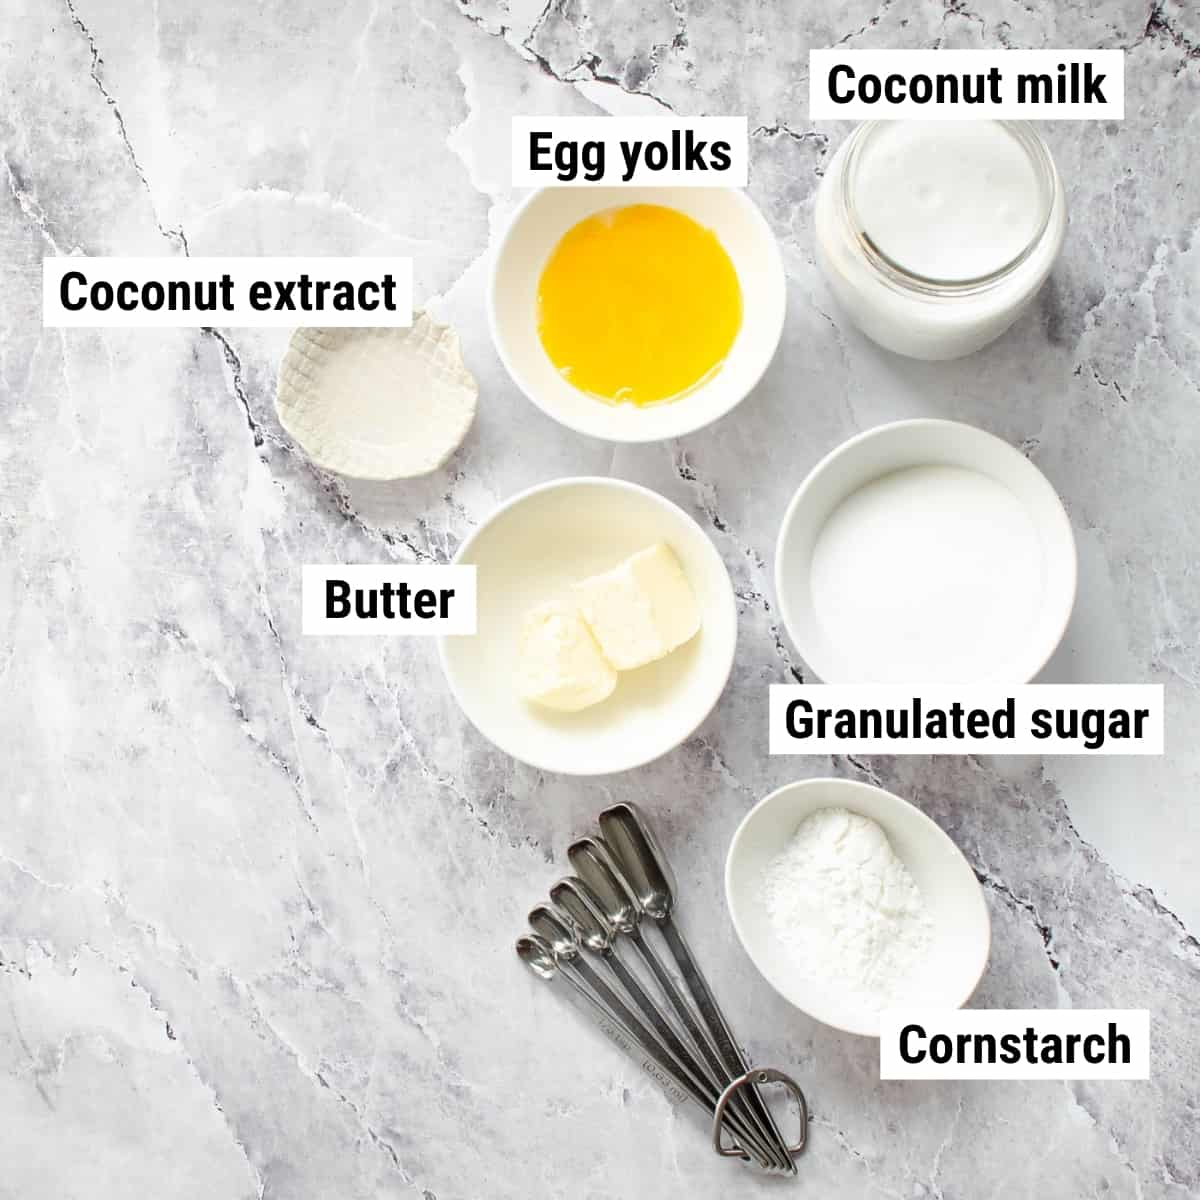 The ingredients to make coconut pudding.